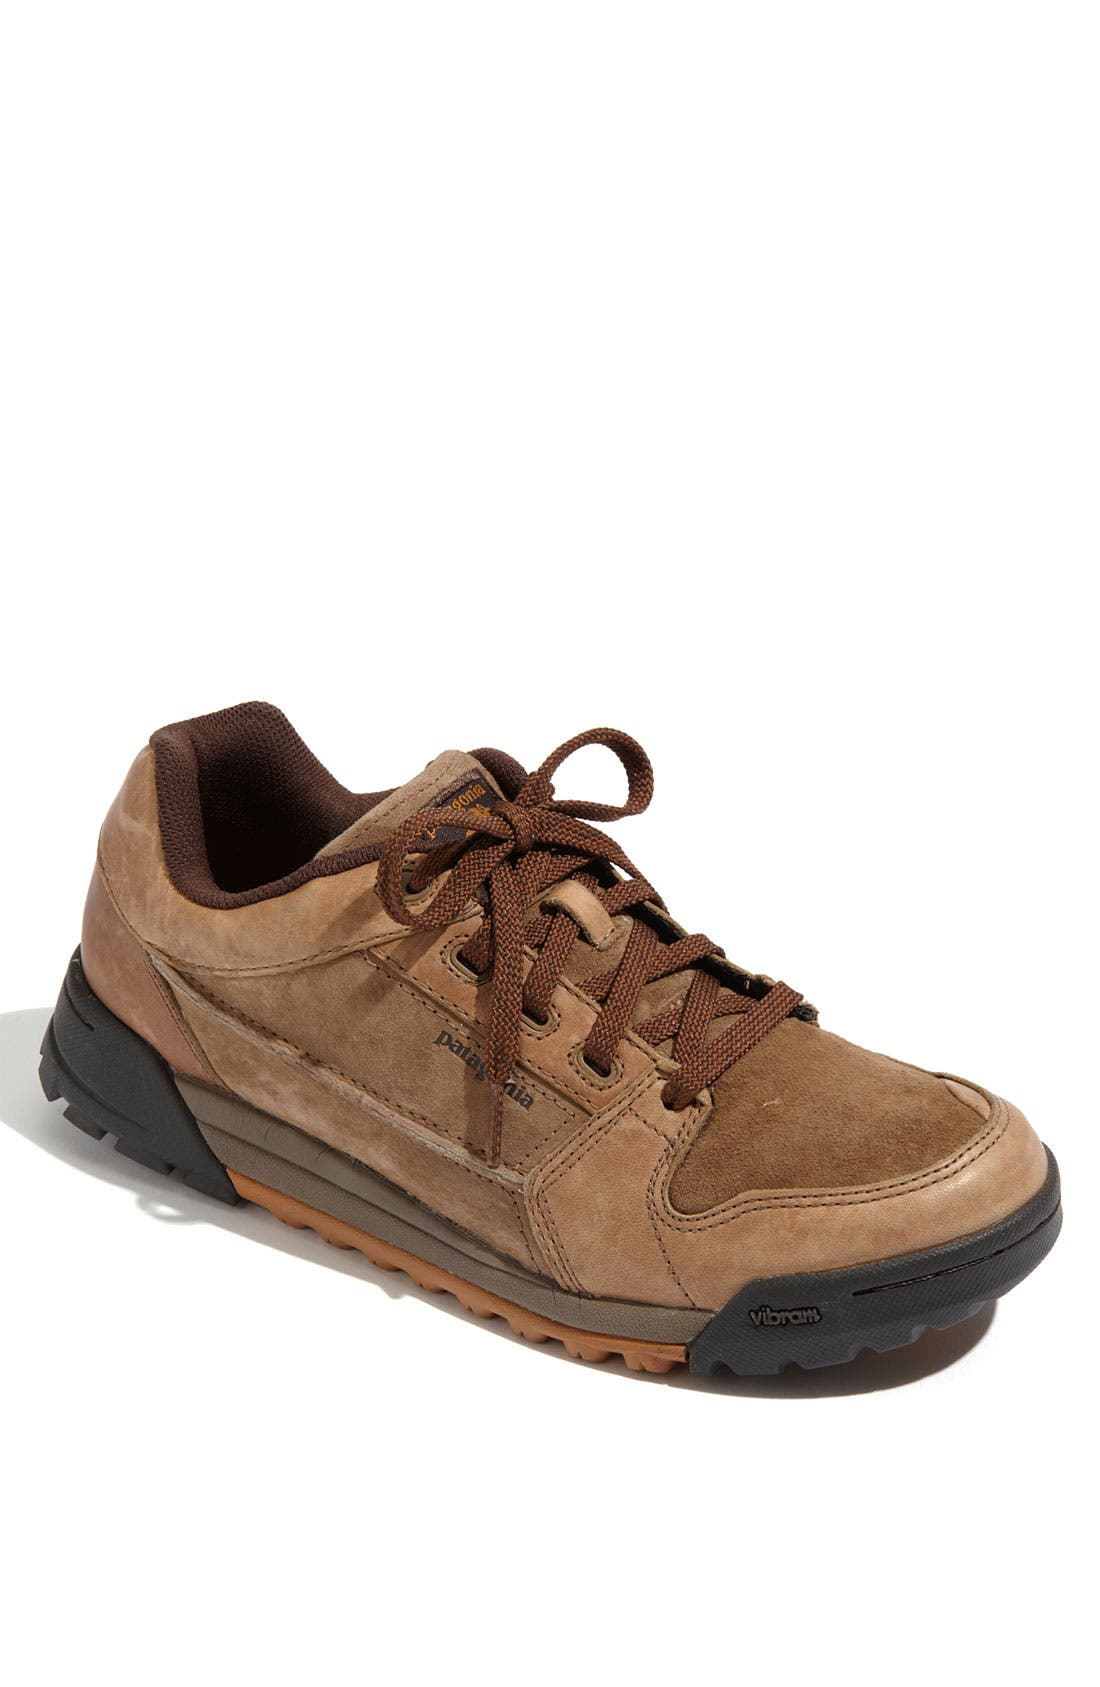 Main Image - Patagonia 'Hog Tie' Multi Sport Shoe (Men)